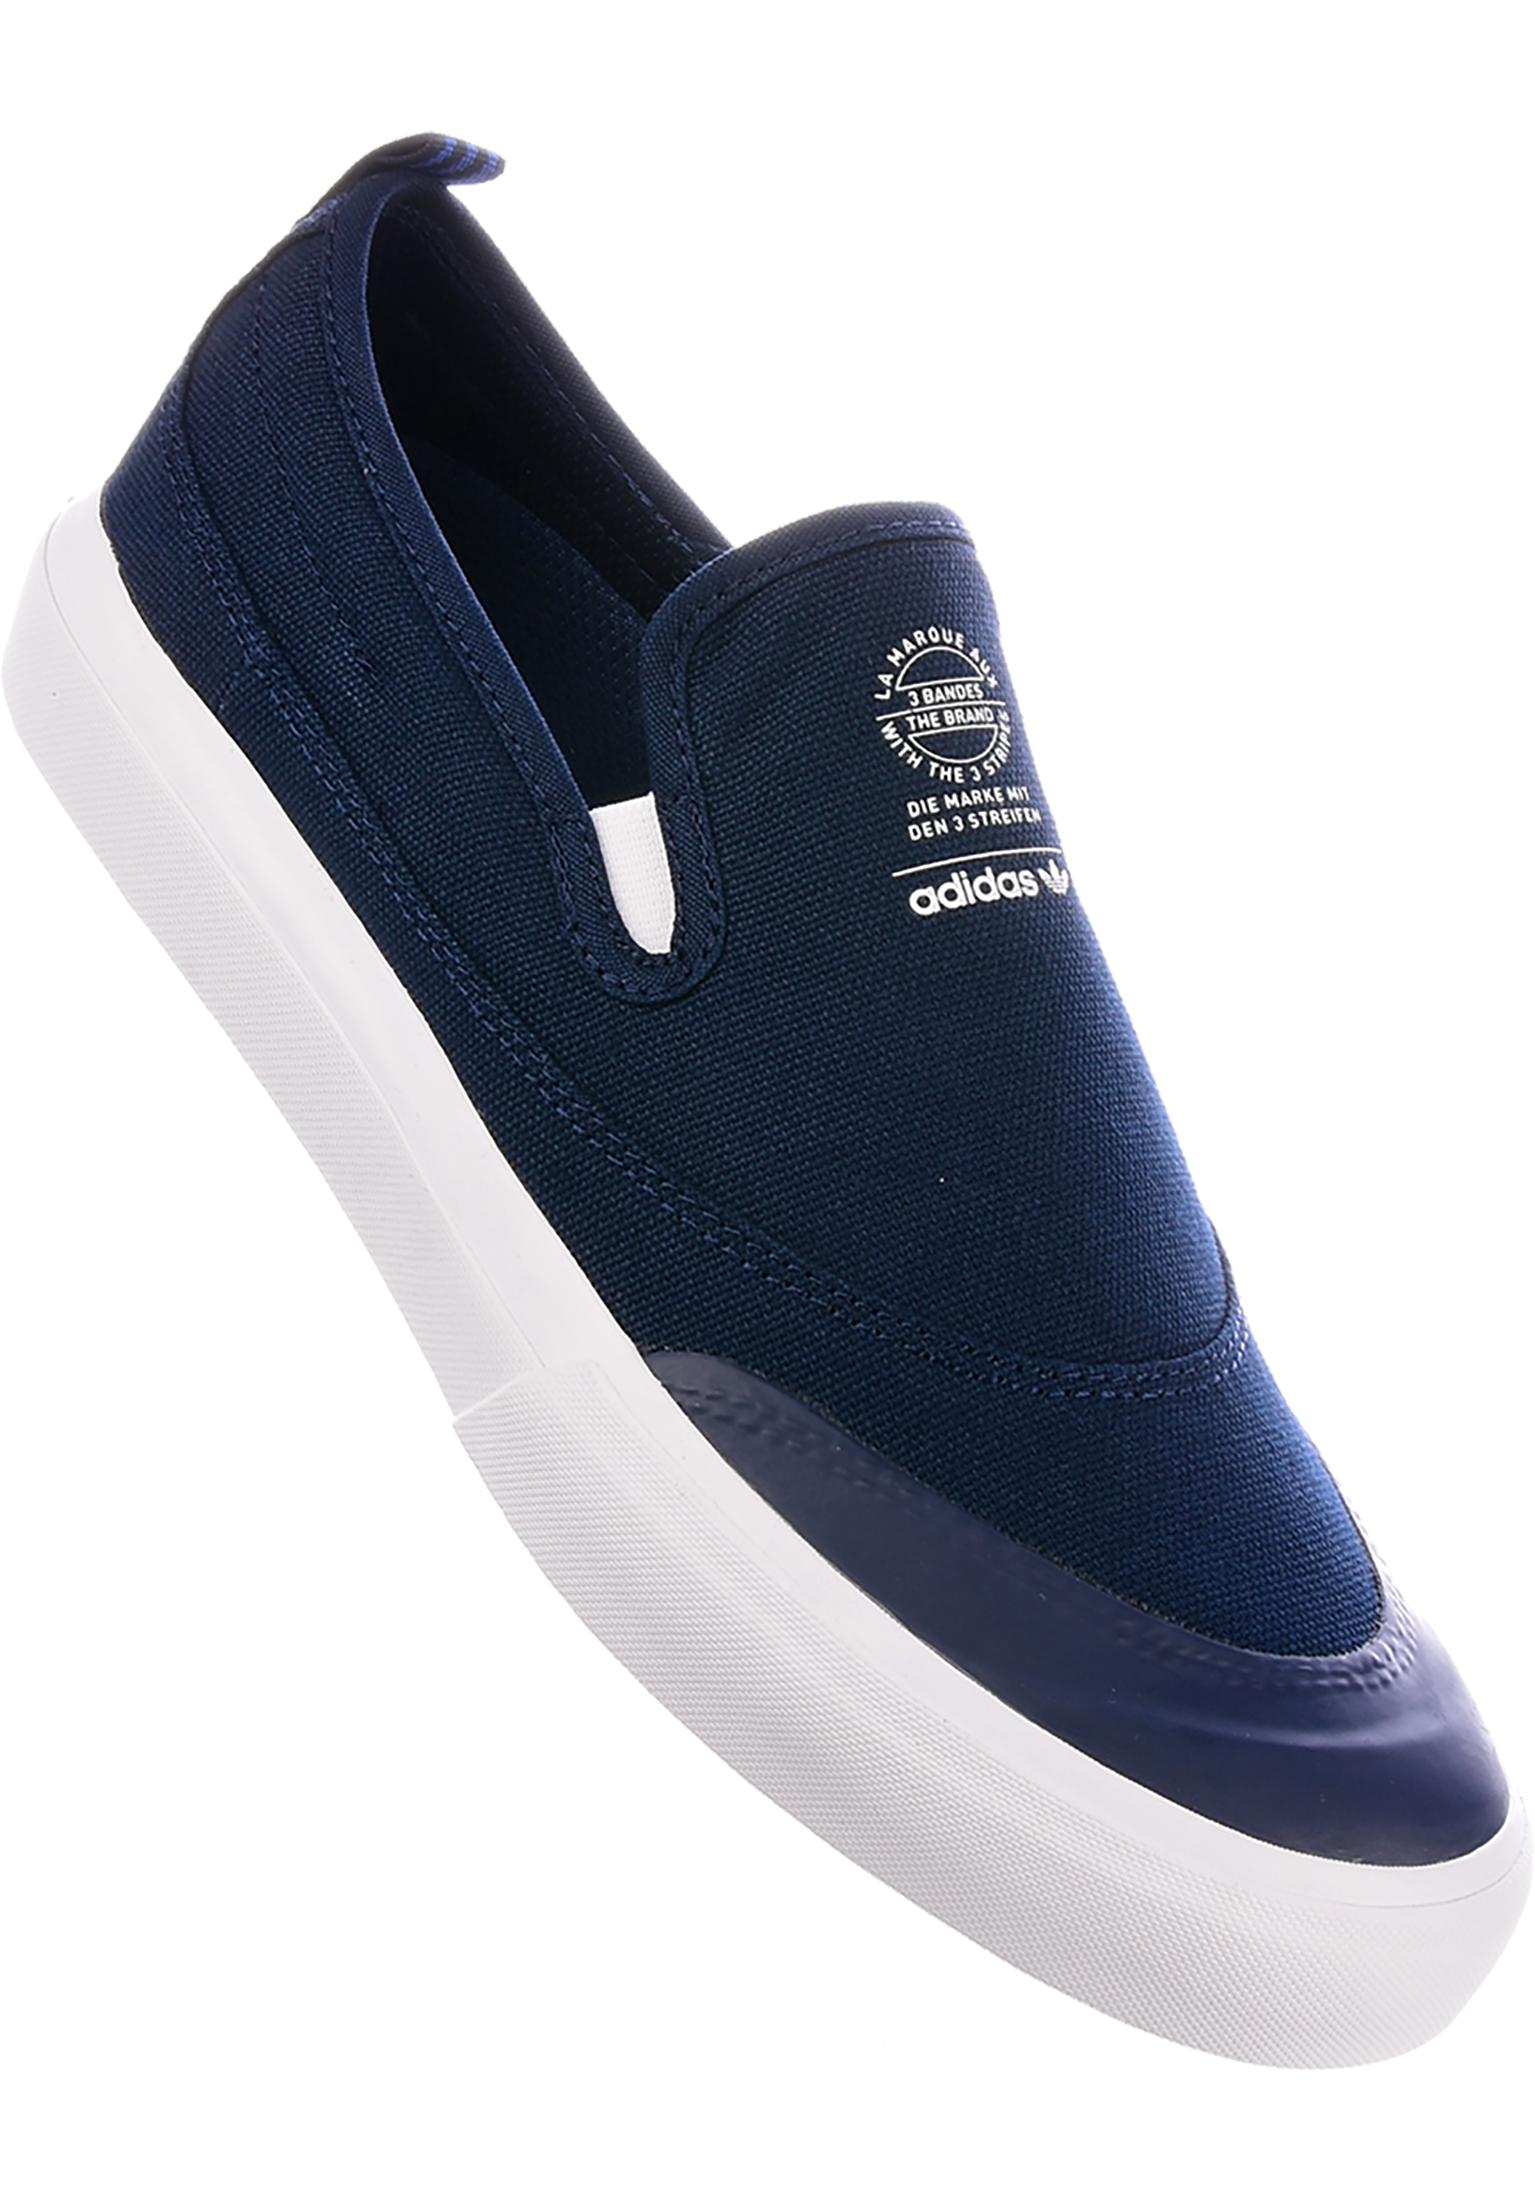 417166c27138 Matchcourt Slip adidas-skateboarding All Shoes in navy-white-gum for Men